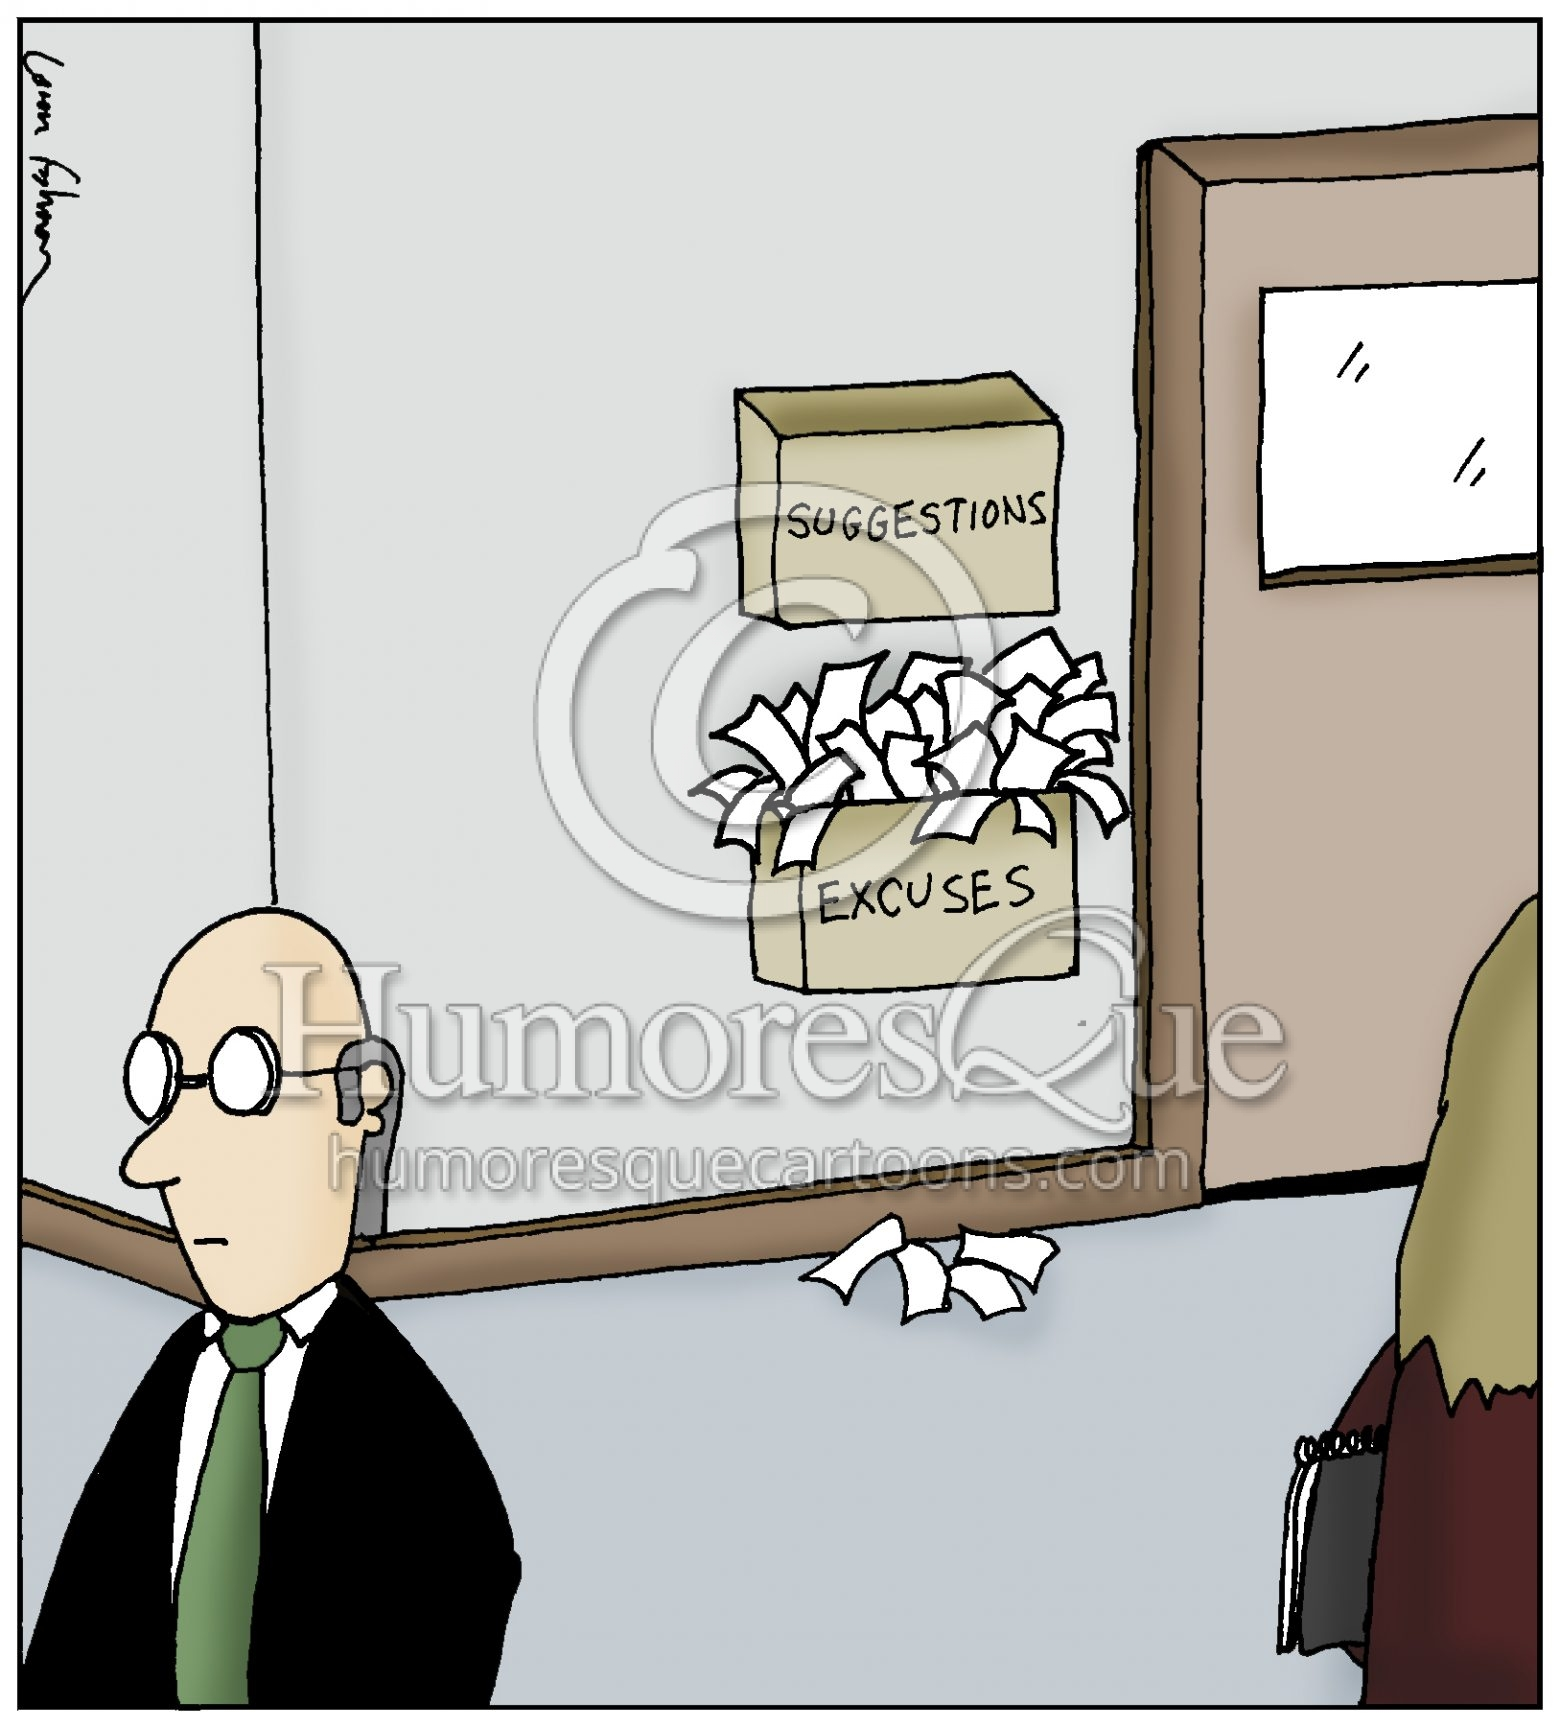 suggestions and excused boxes in office cartoon